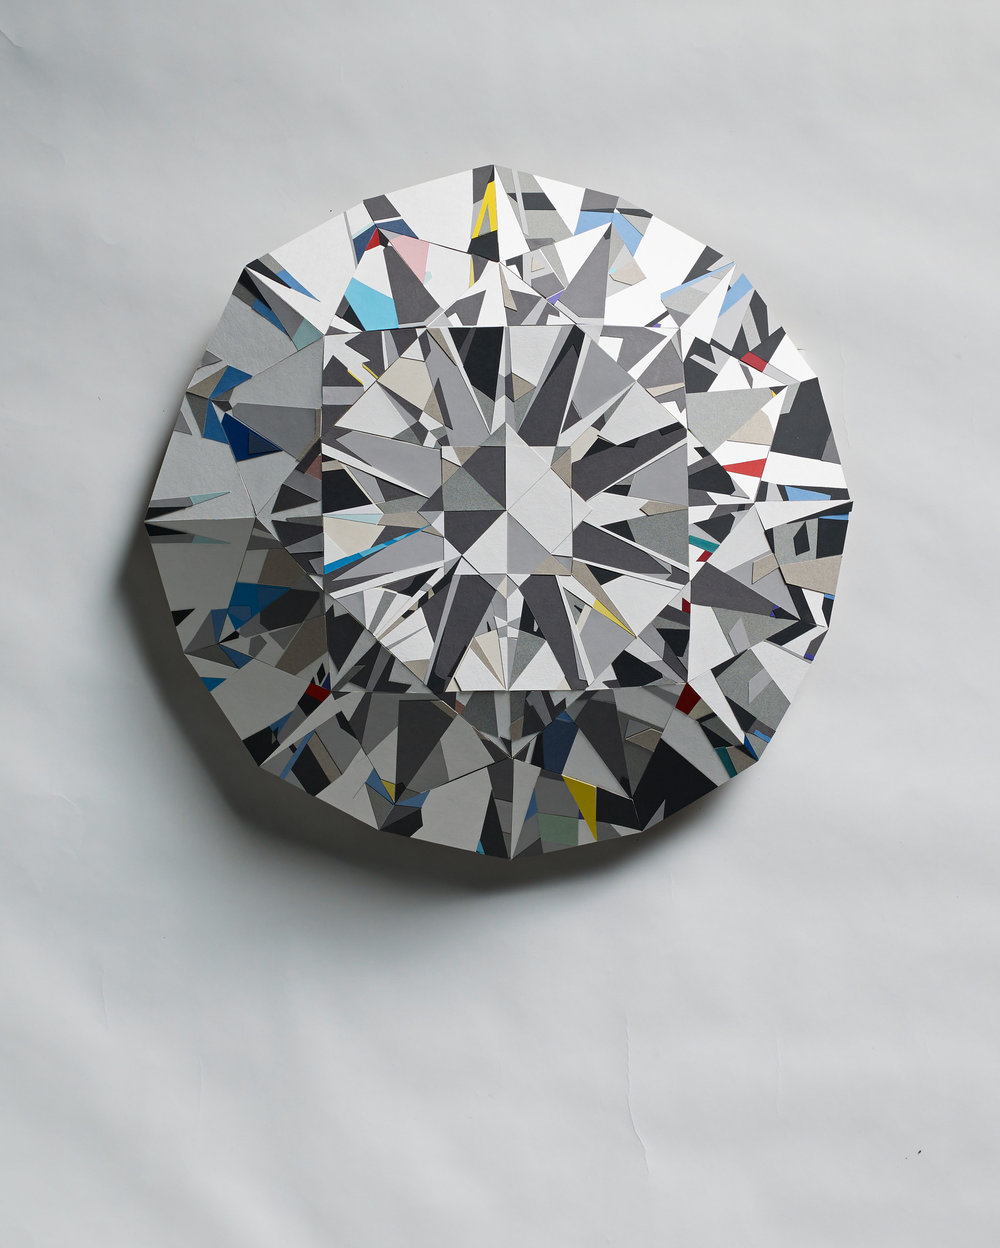 White Diamond - Three dimensional paper mosaic made with colored photo mounting board.Diameter approximately 59cm   depth: 12cm